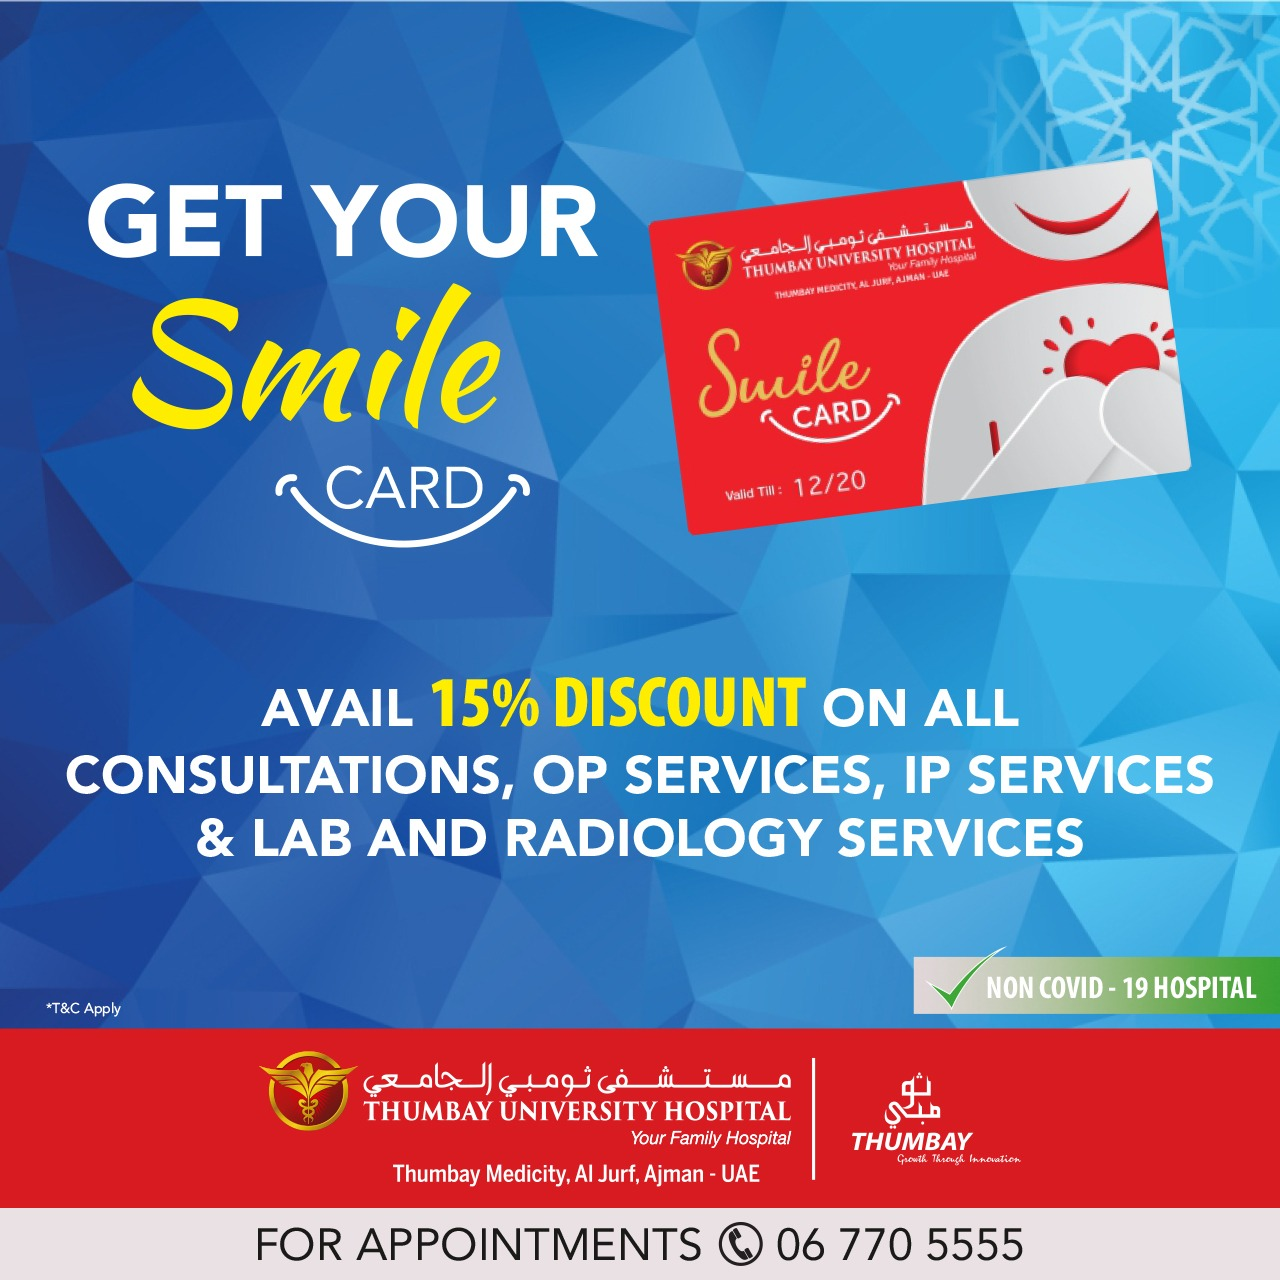 Get your Smile Card Offer